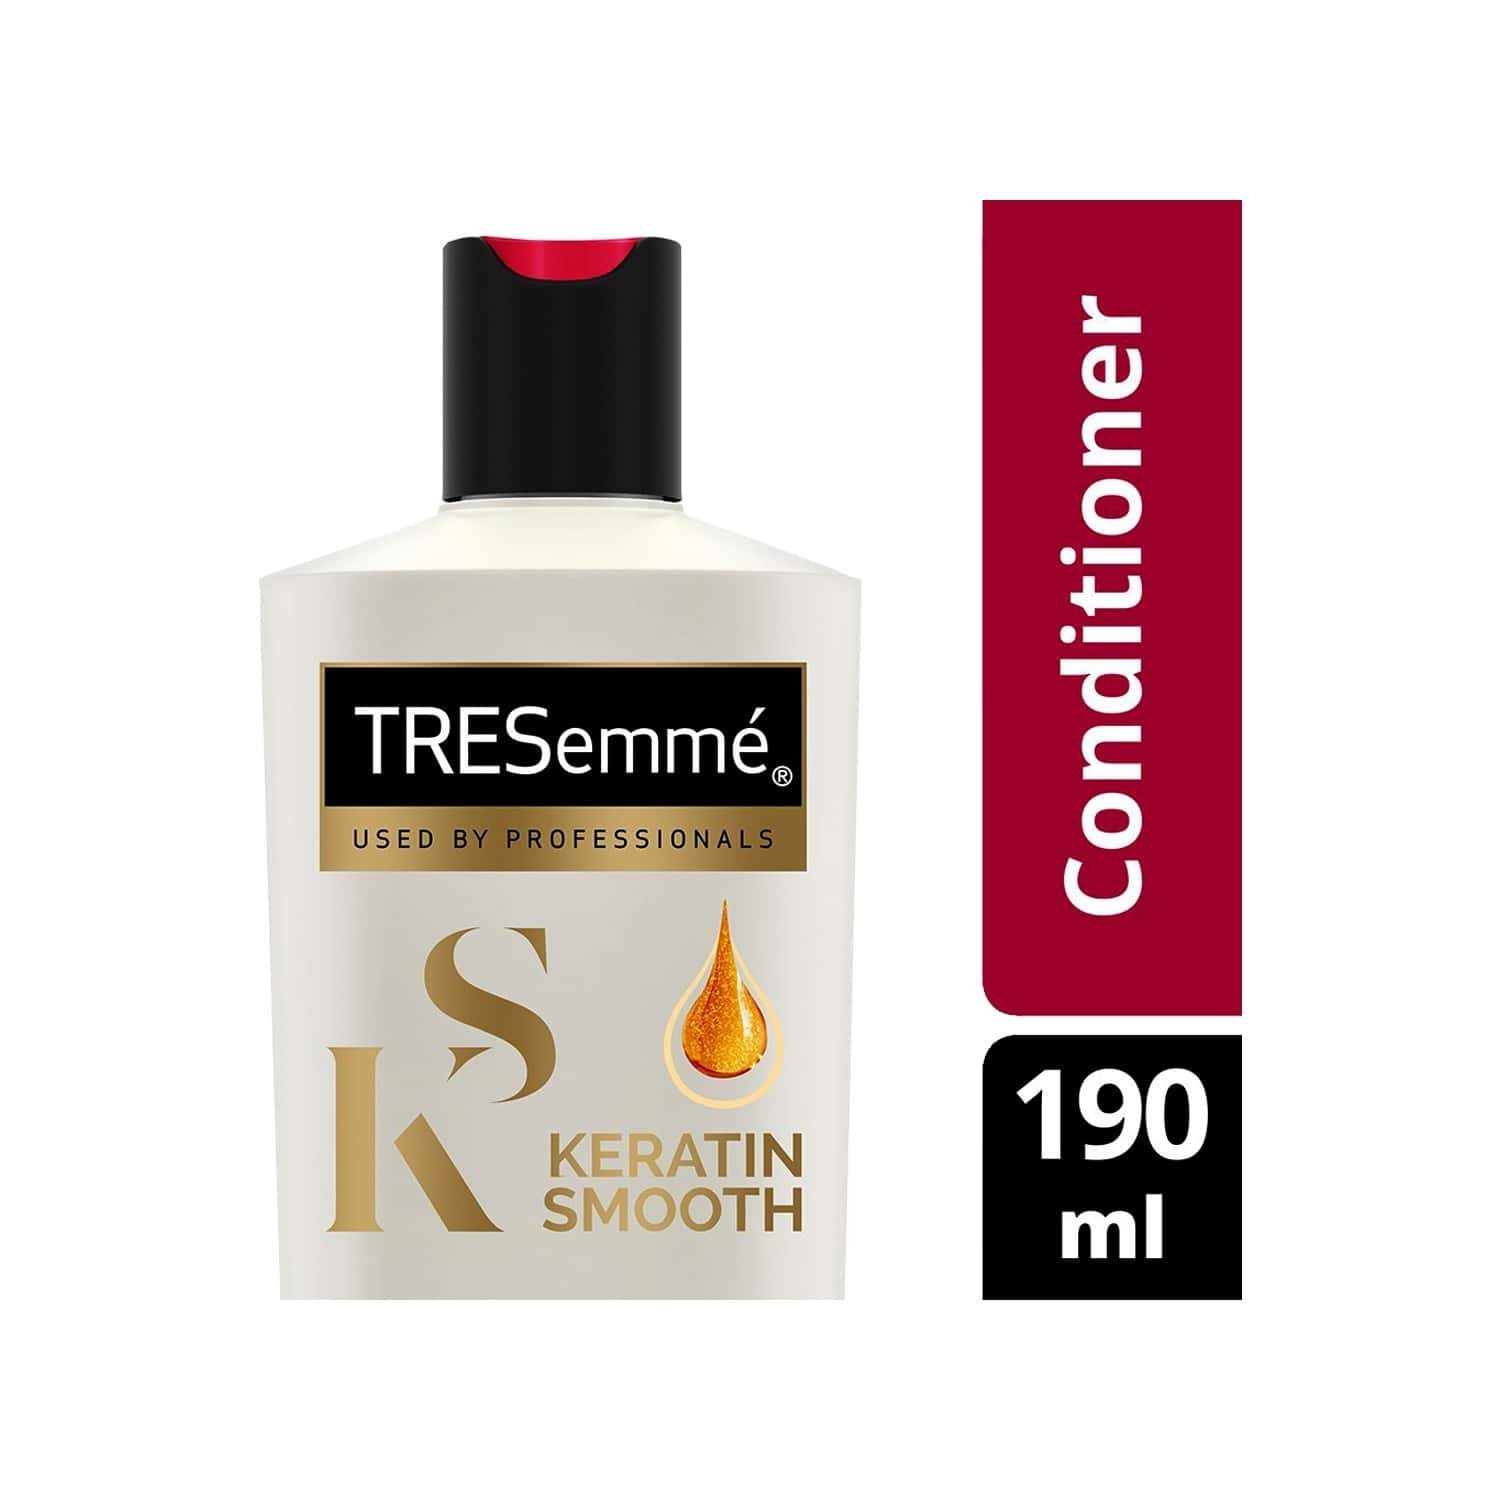 Tresemme Keratin Smooth Condition 190ml